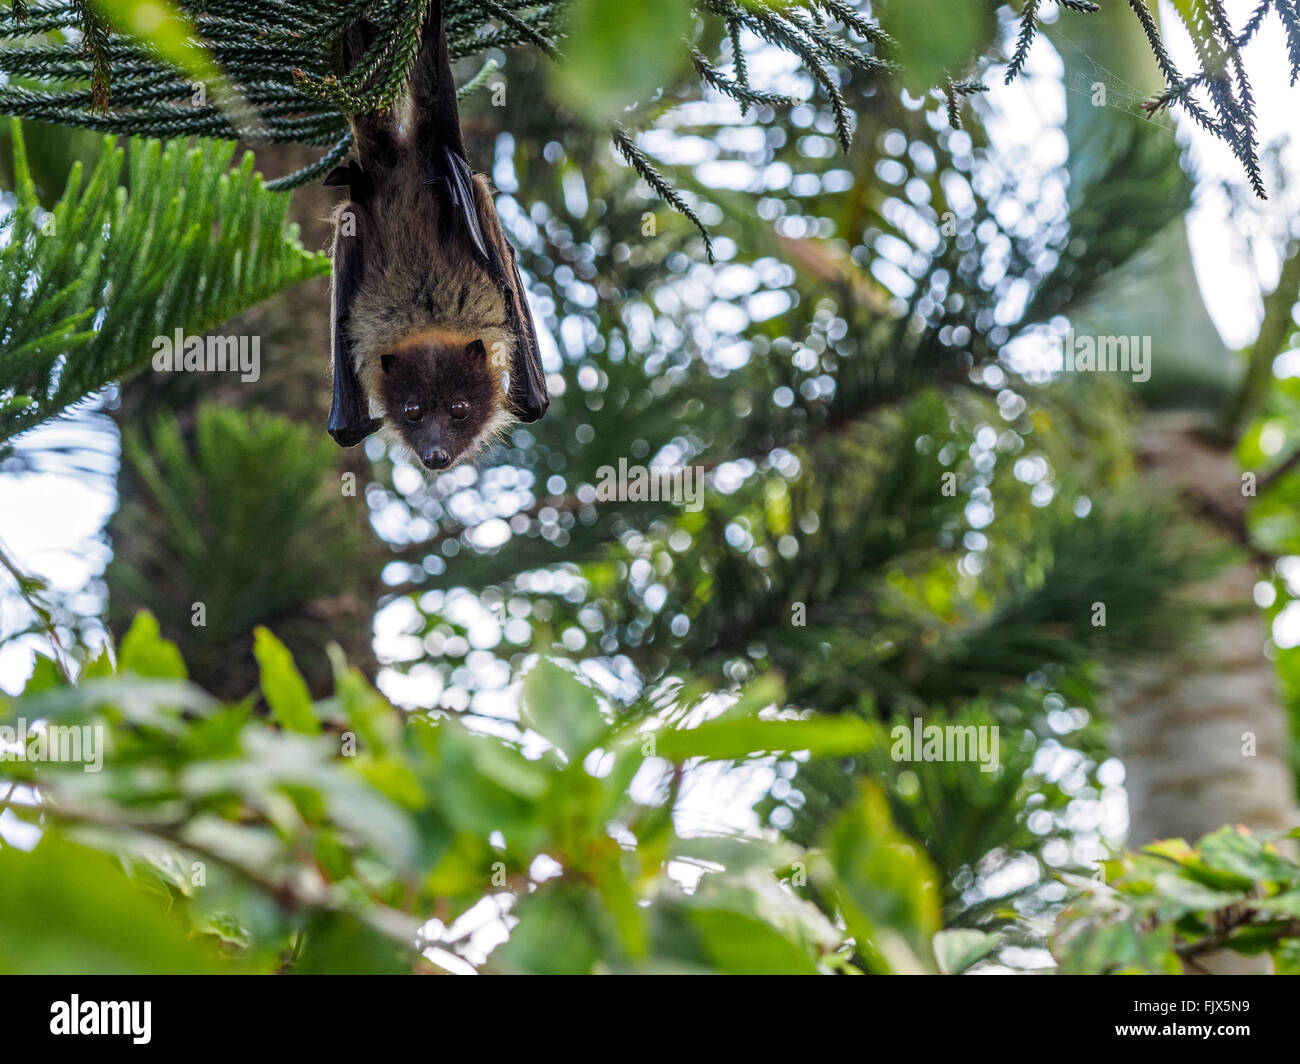 Low Angle Portrait Of Fruit Bat Hanging From Tree - Stock Image